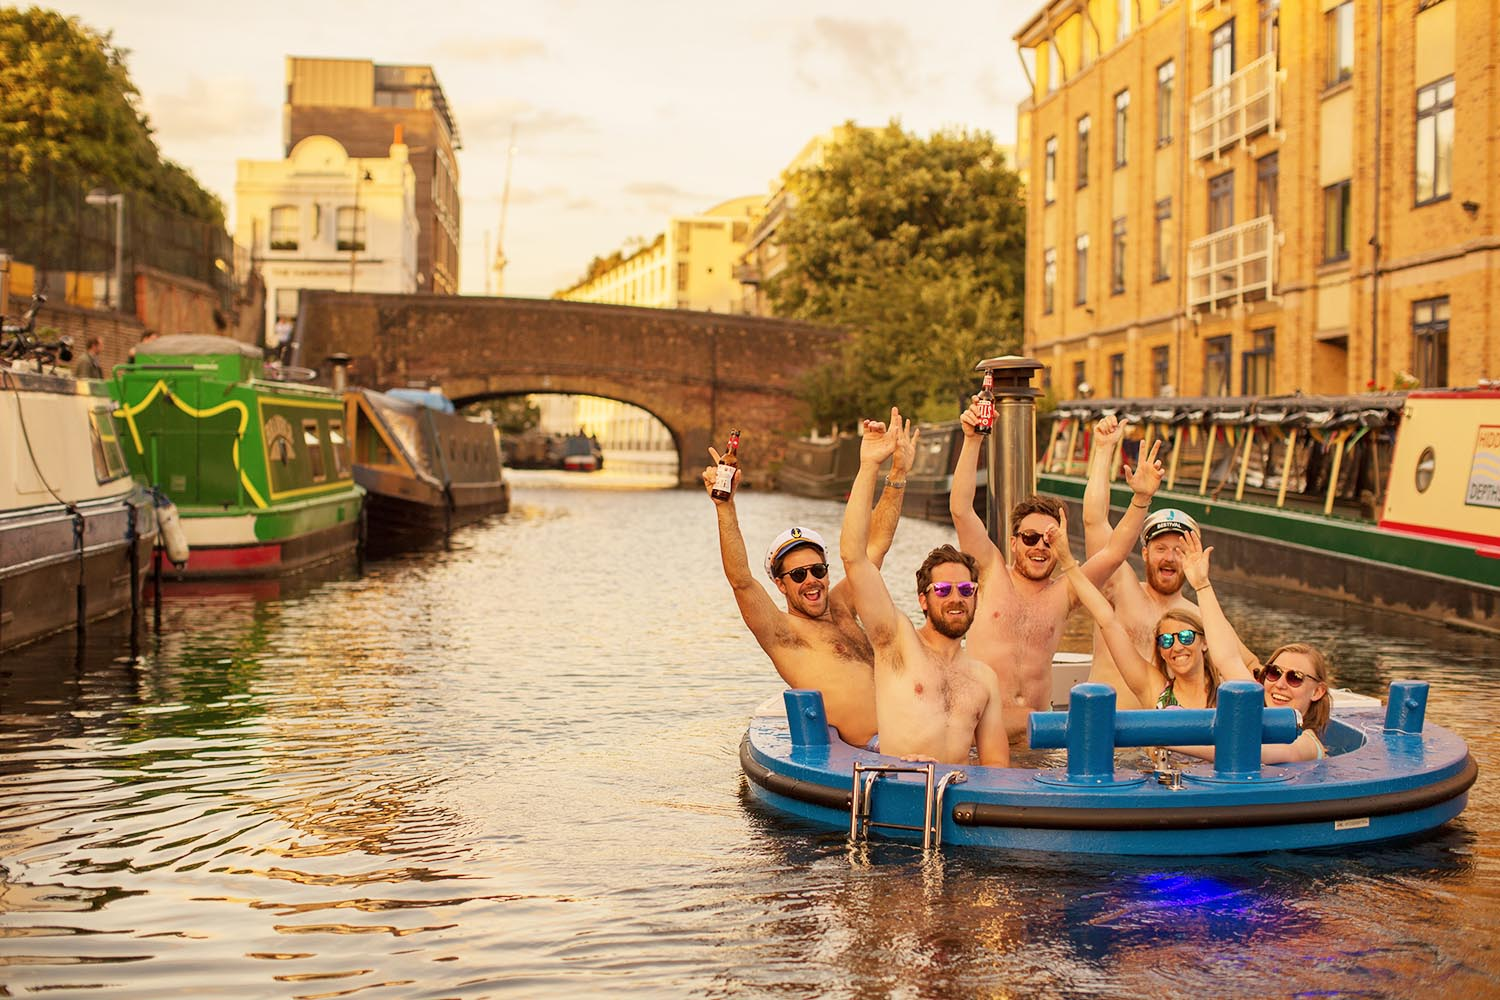 ANGEL/OLD STREET - Our Central London location is a beautiful and tranquil part of the city. Ideal for a relaxing and luxurious Hot Tug trip along a traditional stretch of British canal